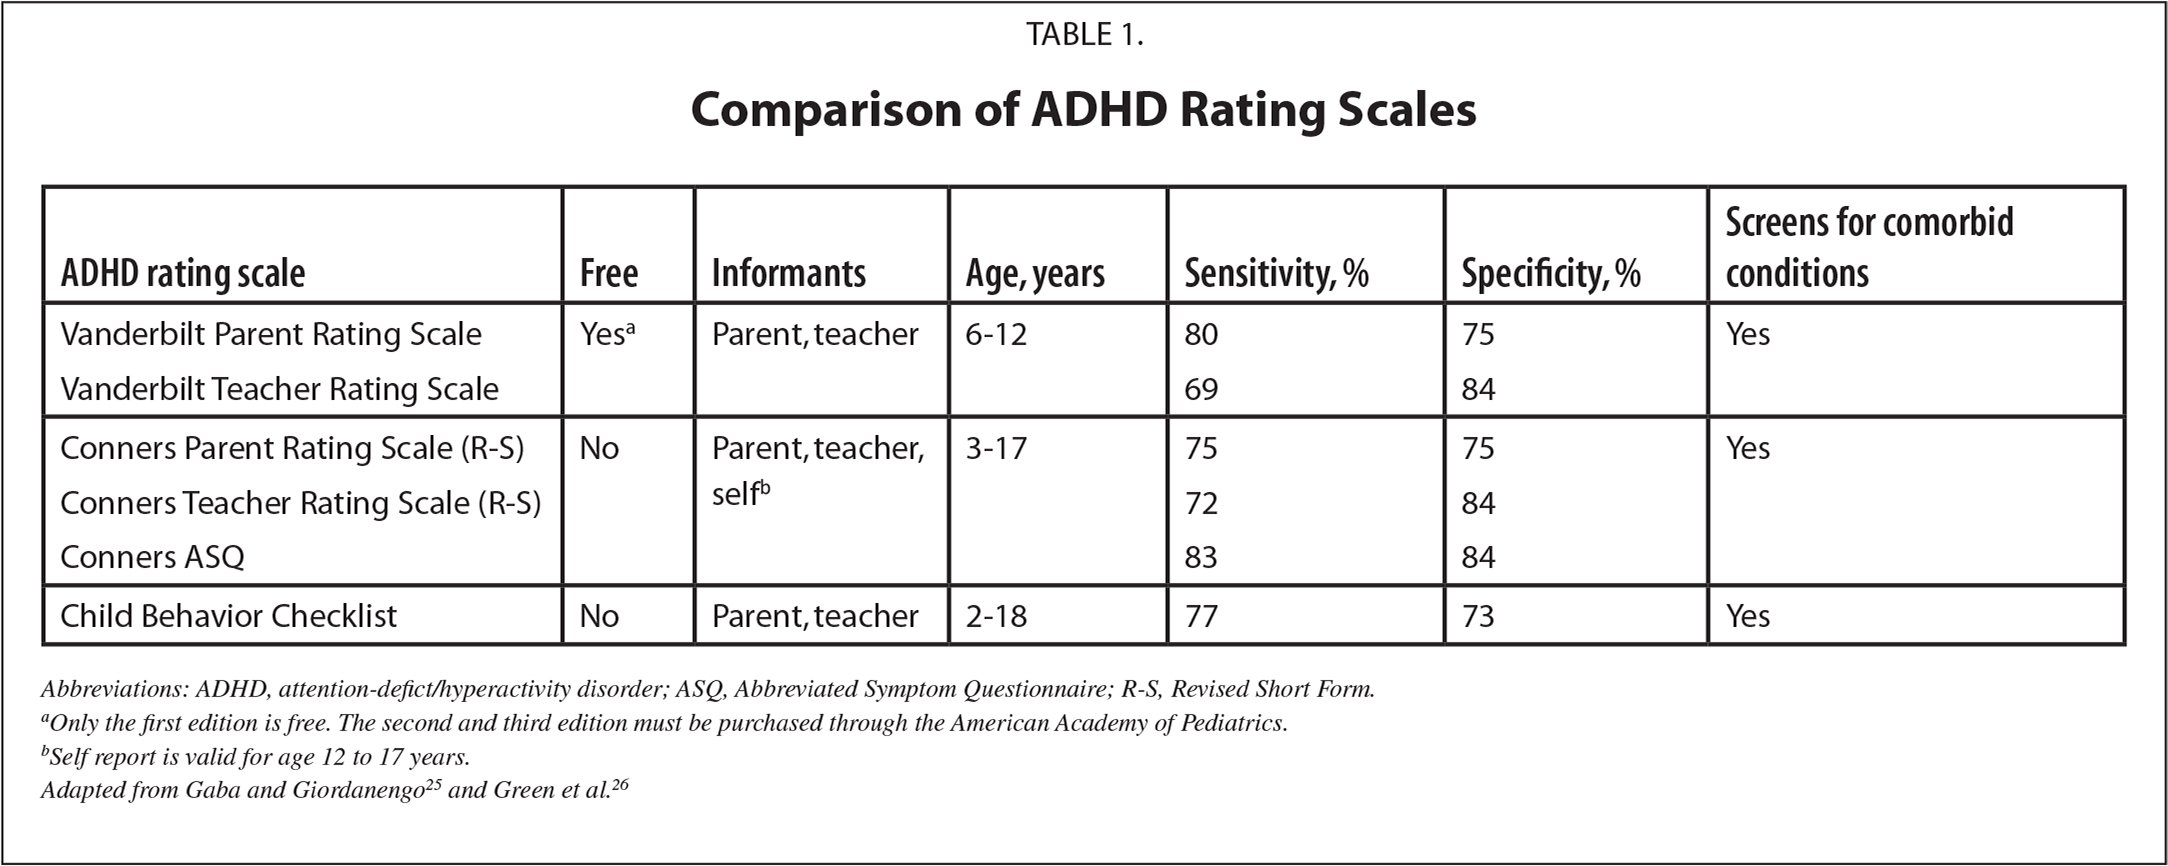 Comparison of ADHD Rating Scales